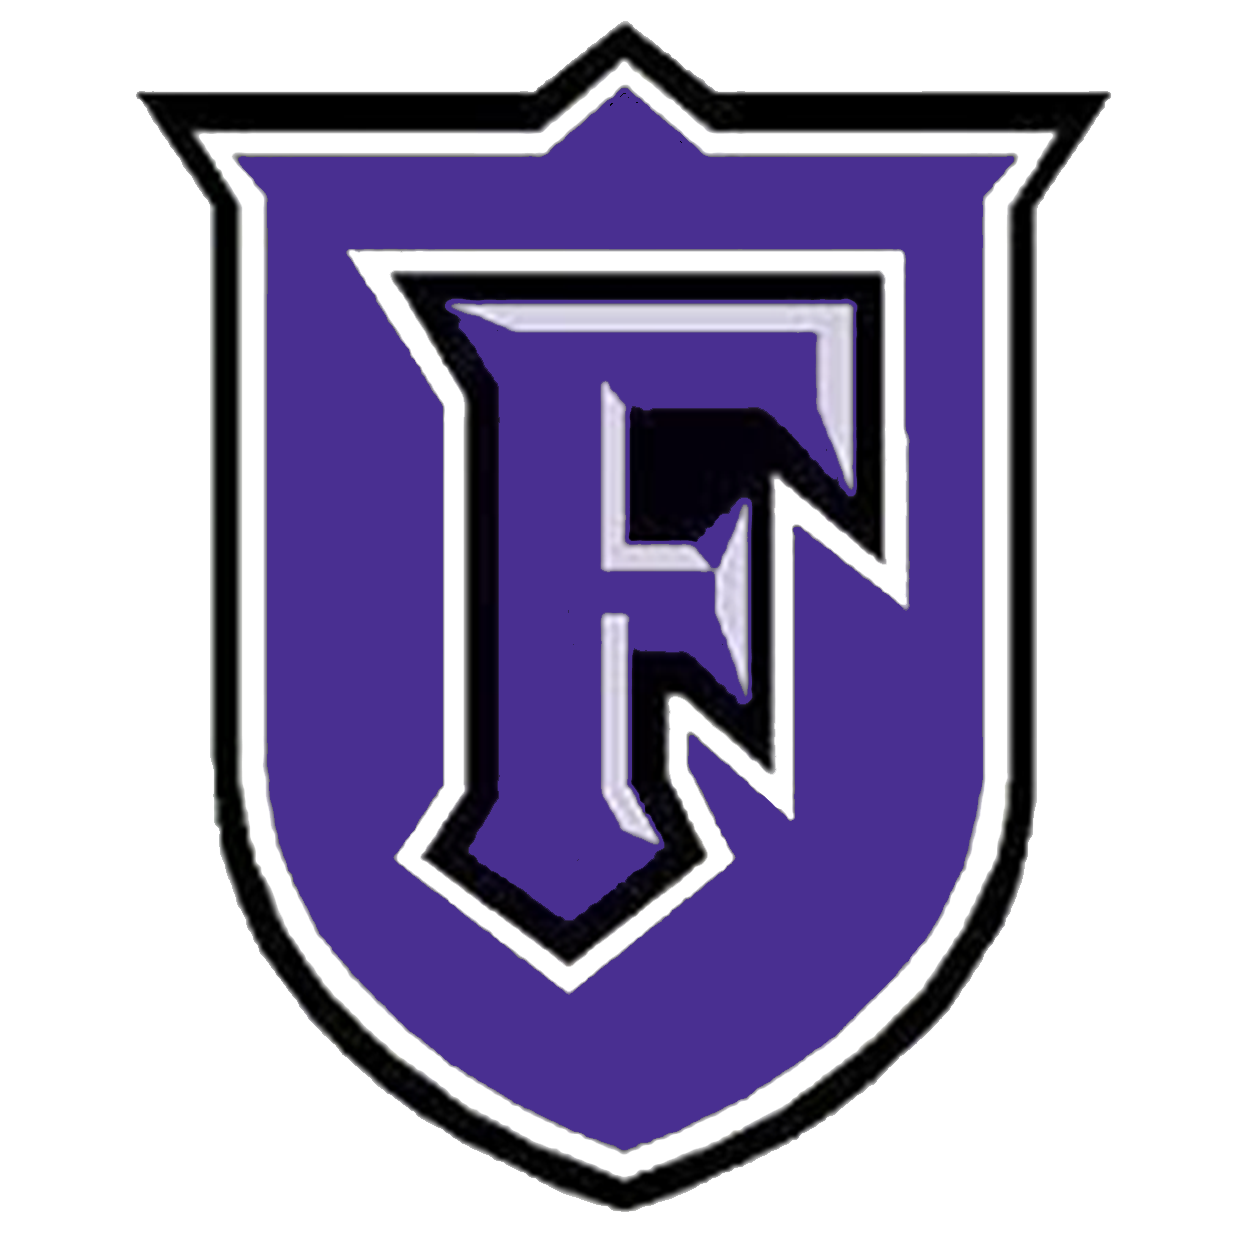 Foothills Christian Knights